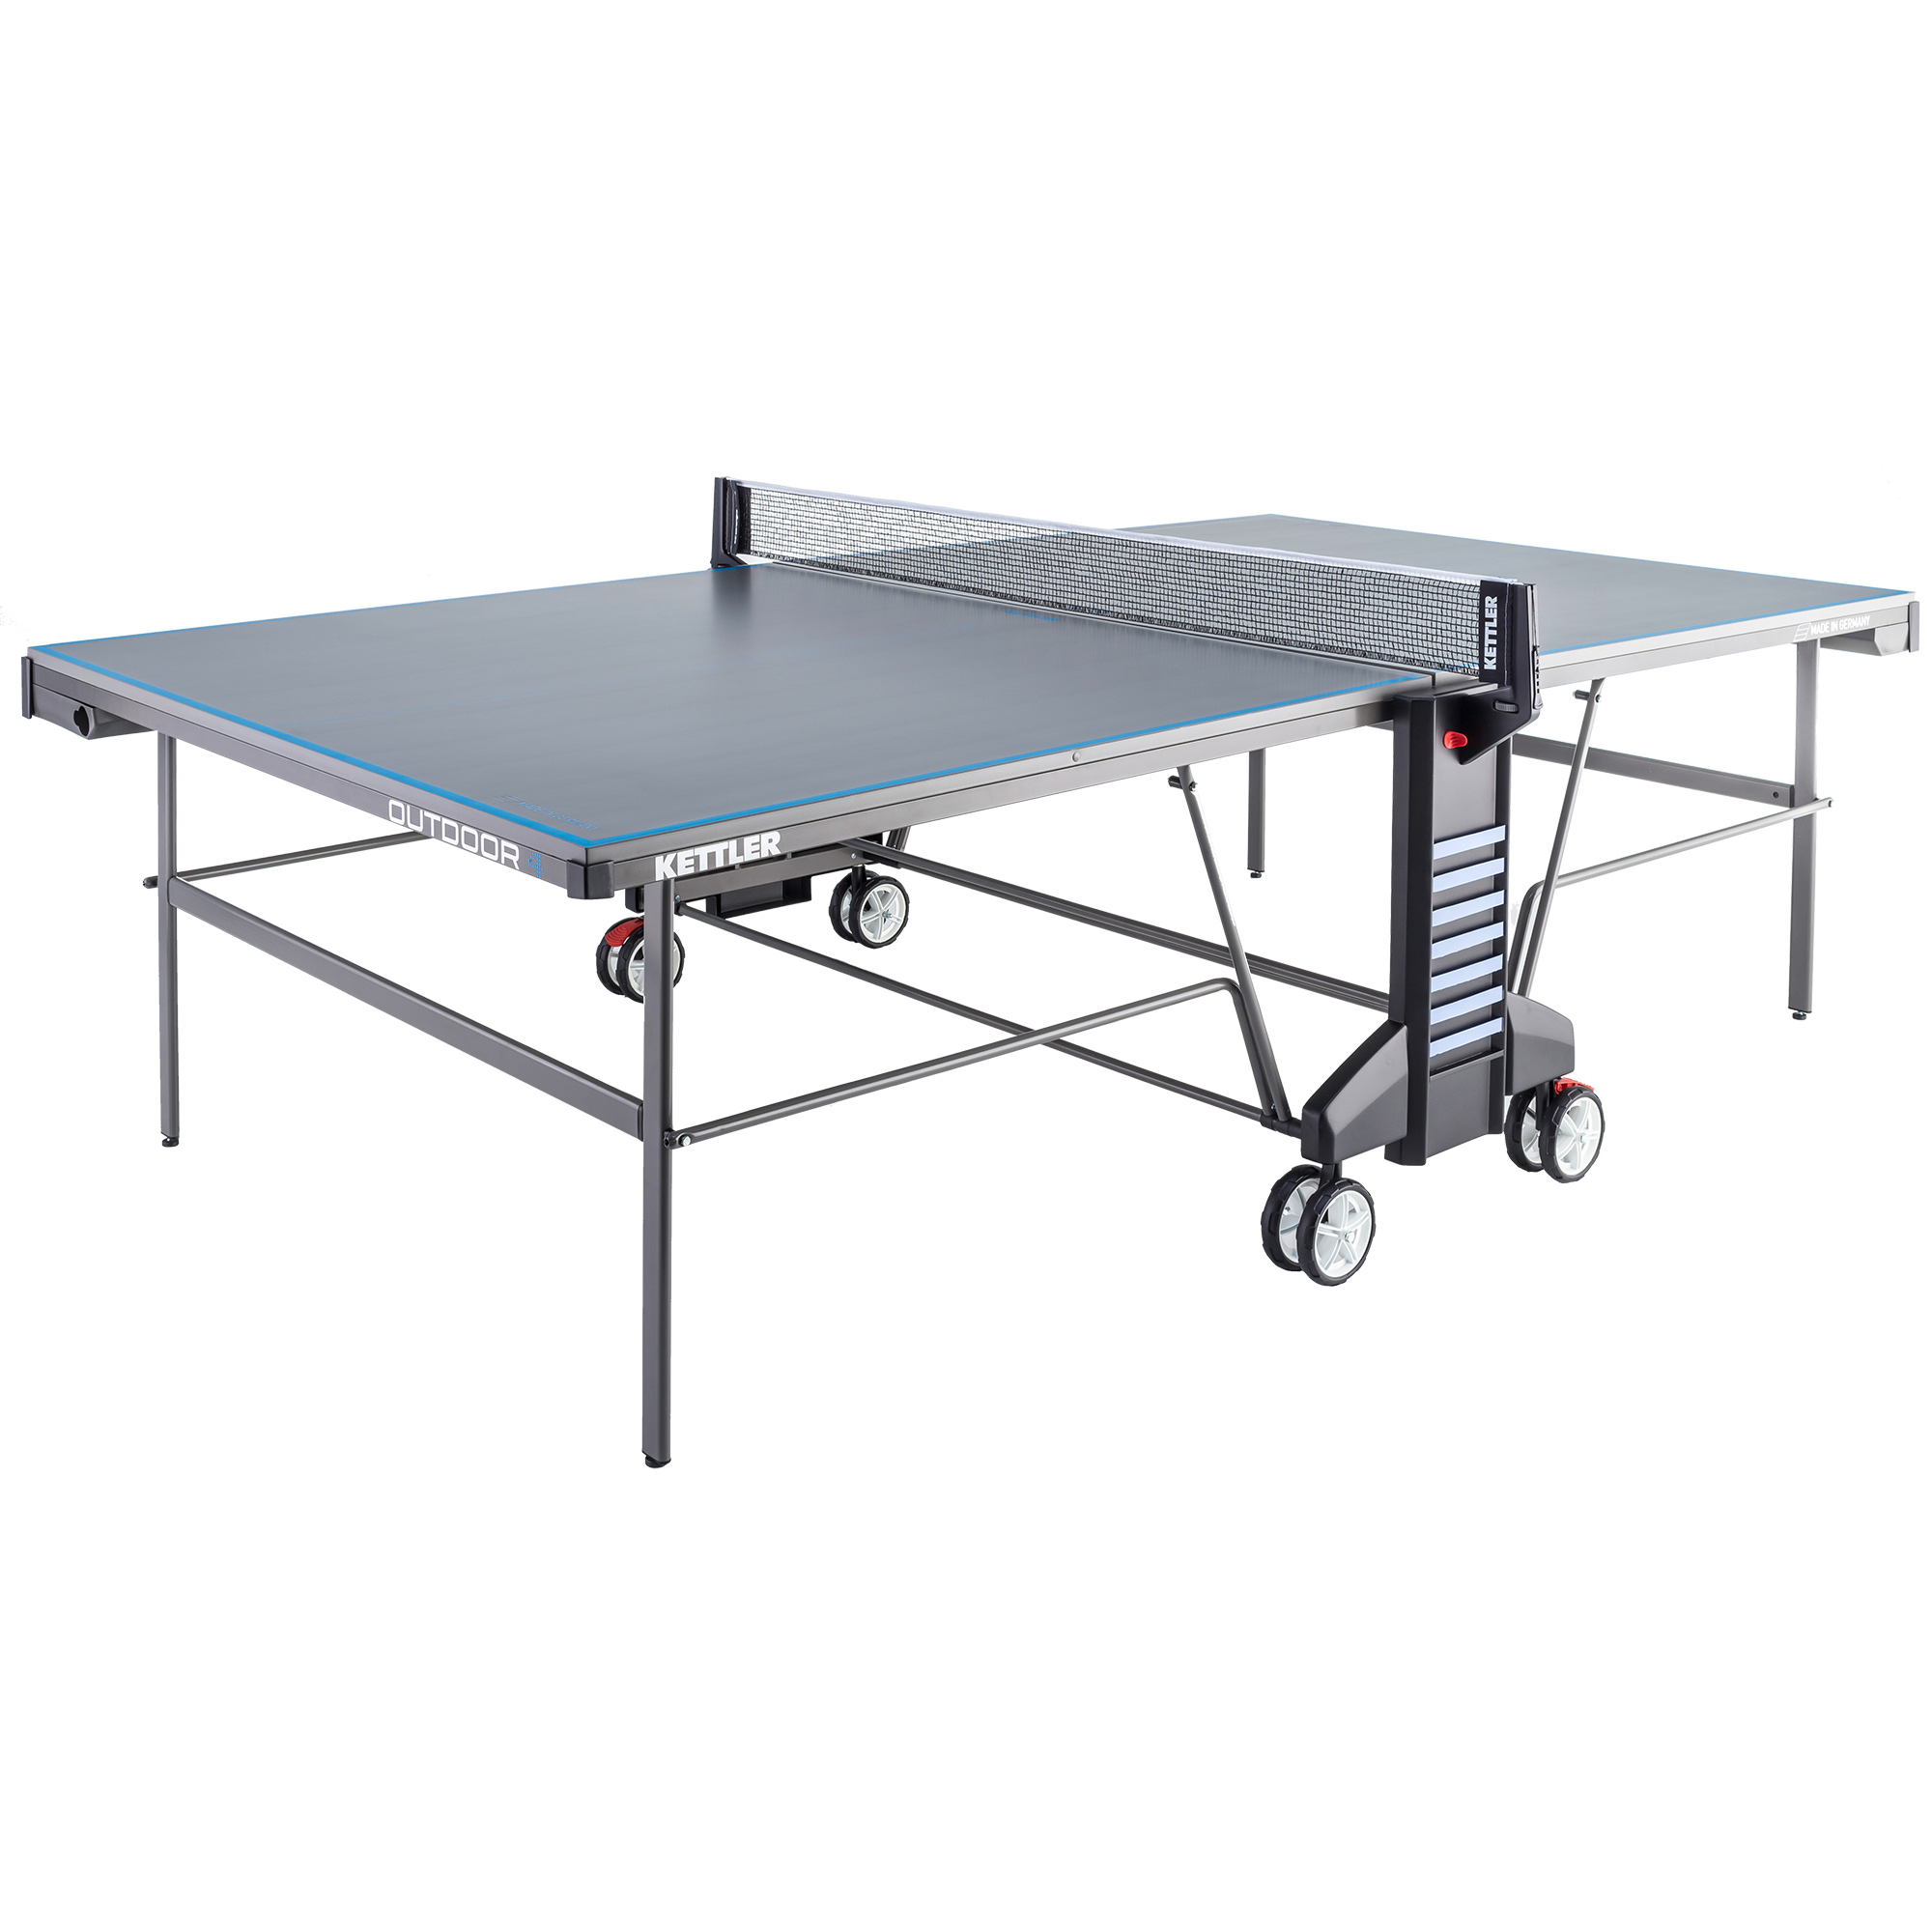 Outdoor 4 table tennis table the kettler 4 outdoor table tennis table